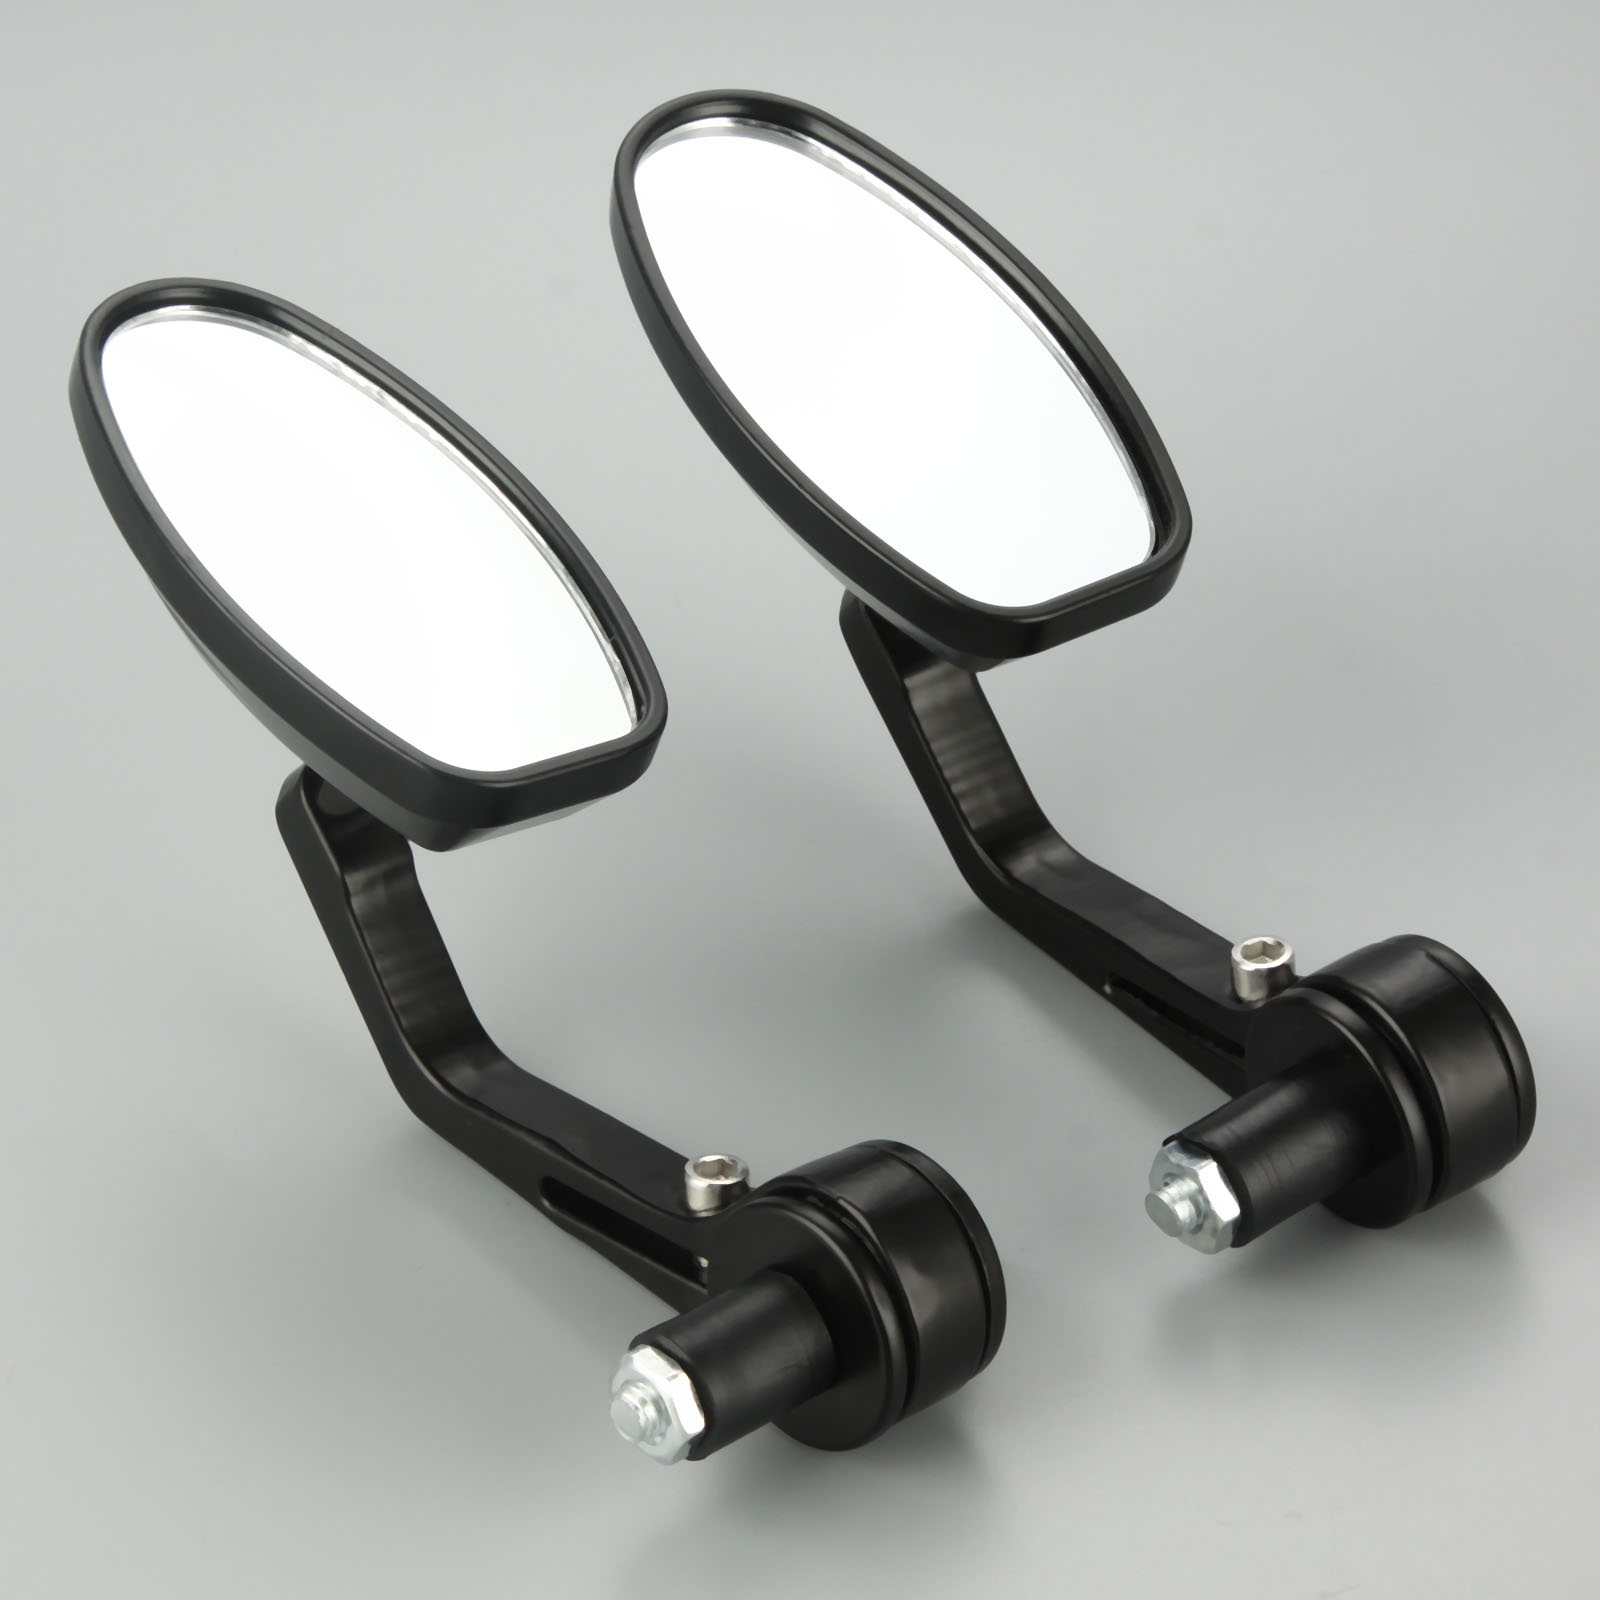 "Motorcycle Rear View Mirrors 7/8"" CNC Aluminum Motorbike Rearview Mirror Cafe Racer For 22mm Handlebar Motorcycle-in Side Mirrors & Accessories from Automobiles & Motorcycles"